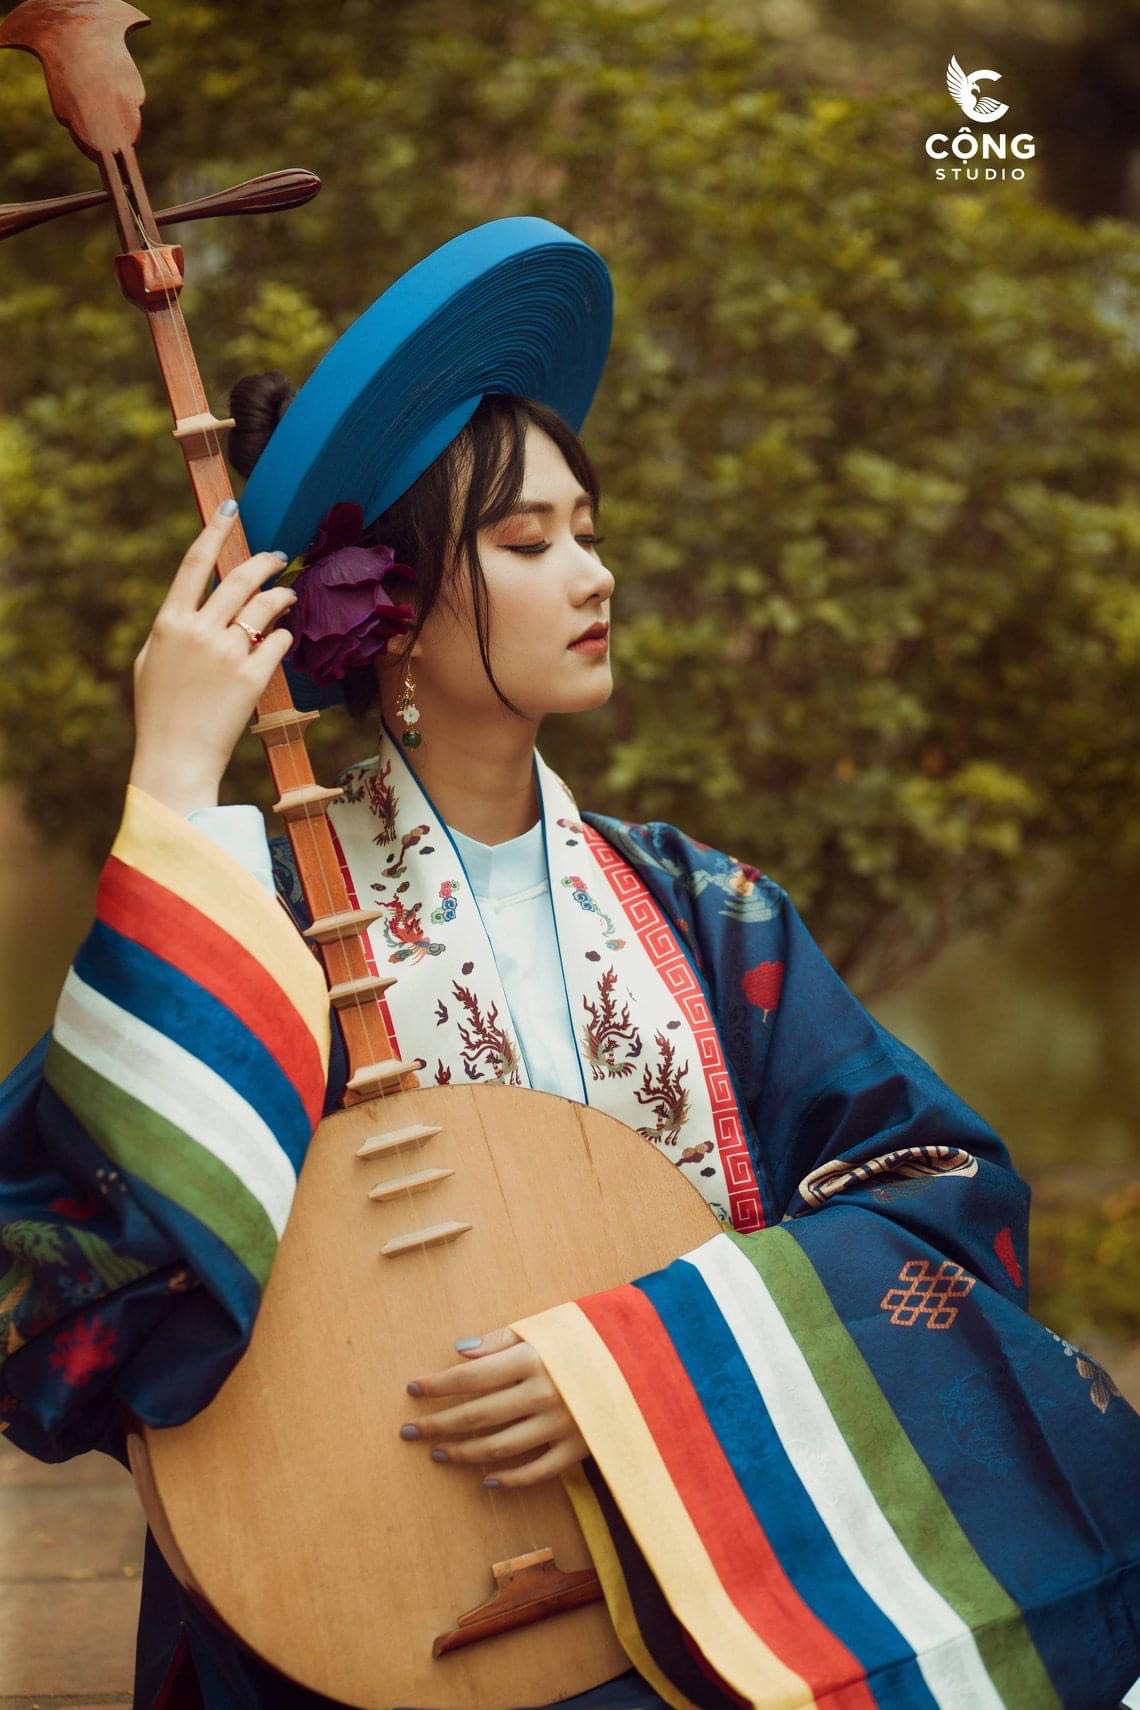 A female student wears a 'nhật bình' dress and holds a 'đàn kìm,' a traditional Vietnamese double-stringed lute, in this supplied yearbook photo.